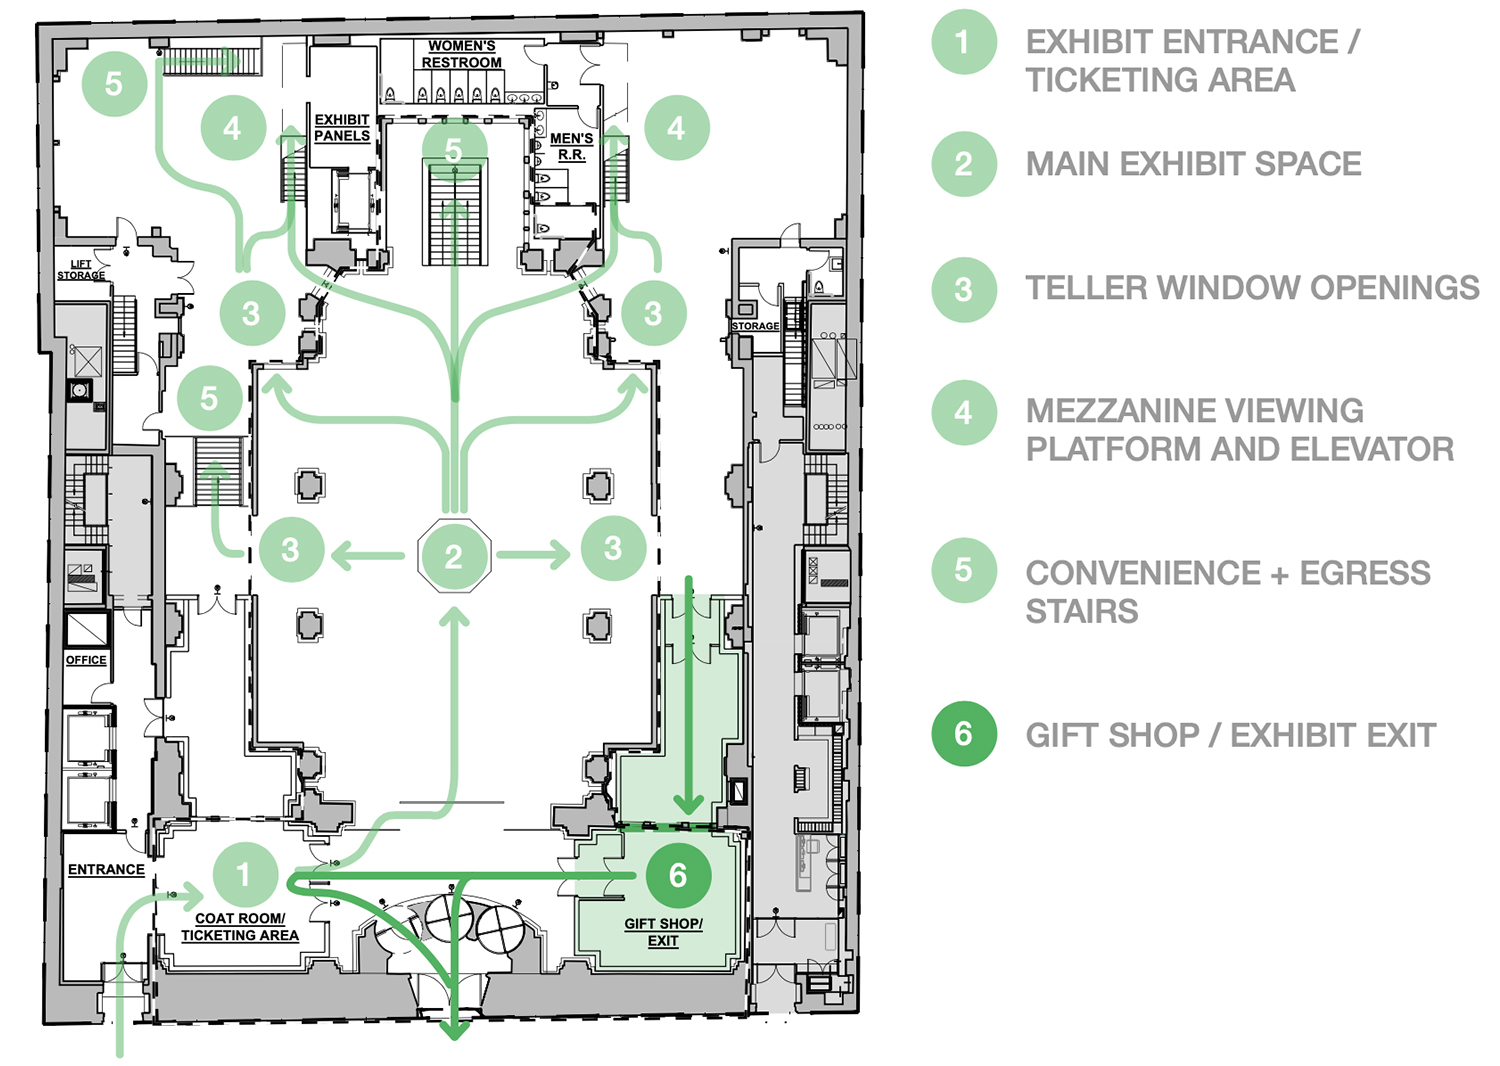 Map of proposed activations for immersive exhibition space 'Hall Des Lumieres' - Culturespaces / Woods Bagot